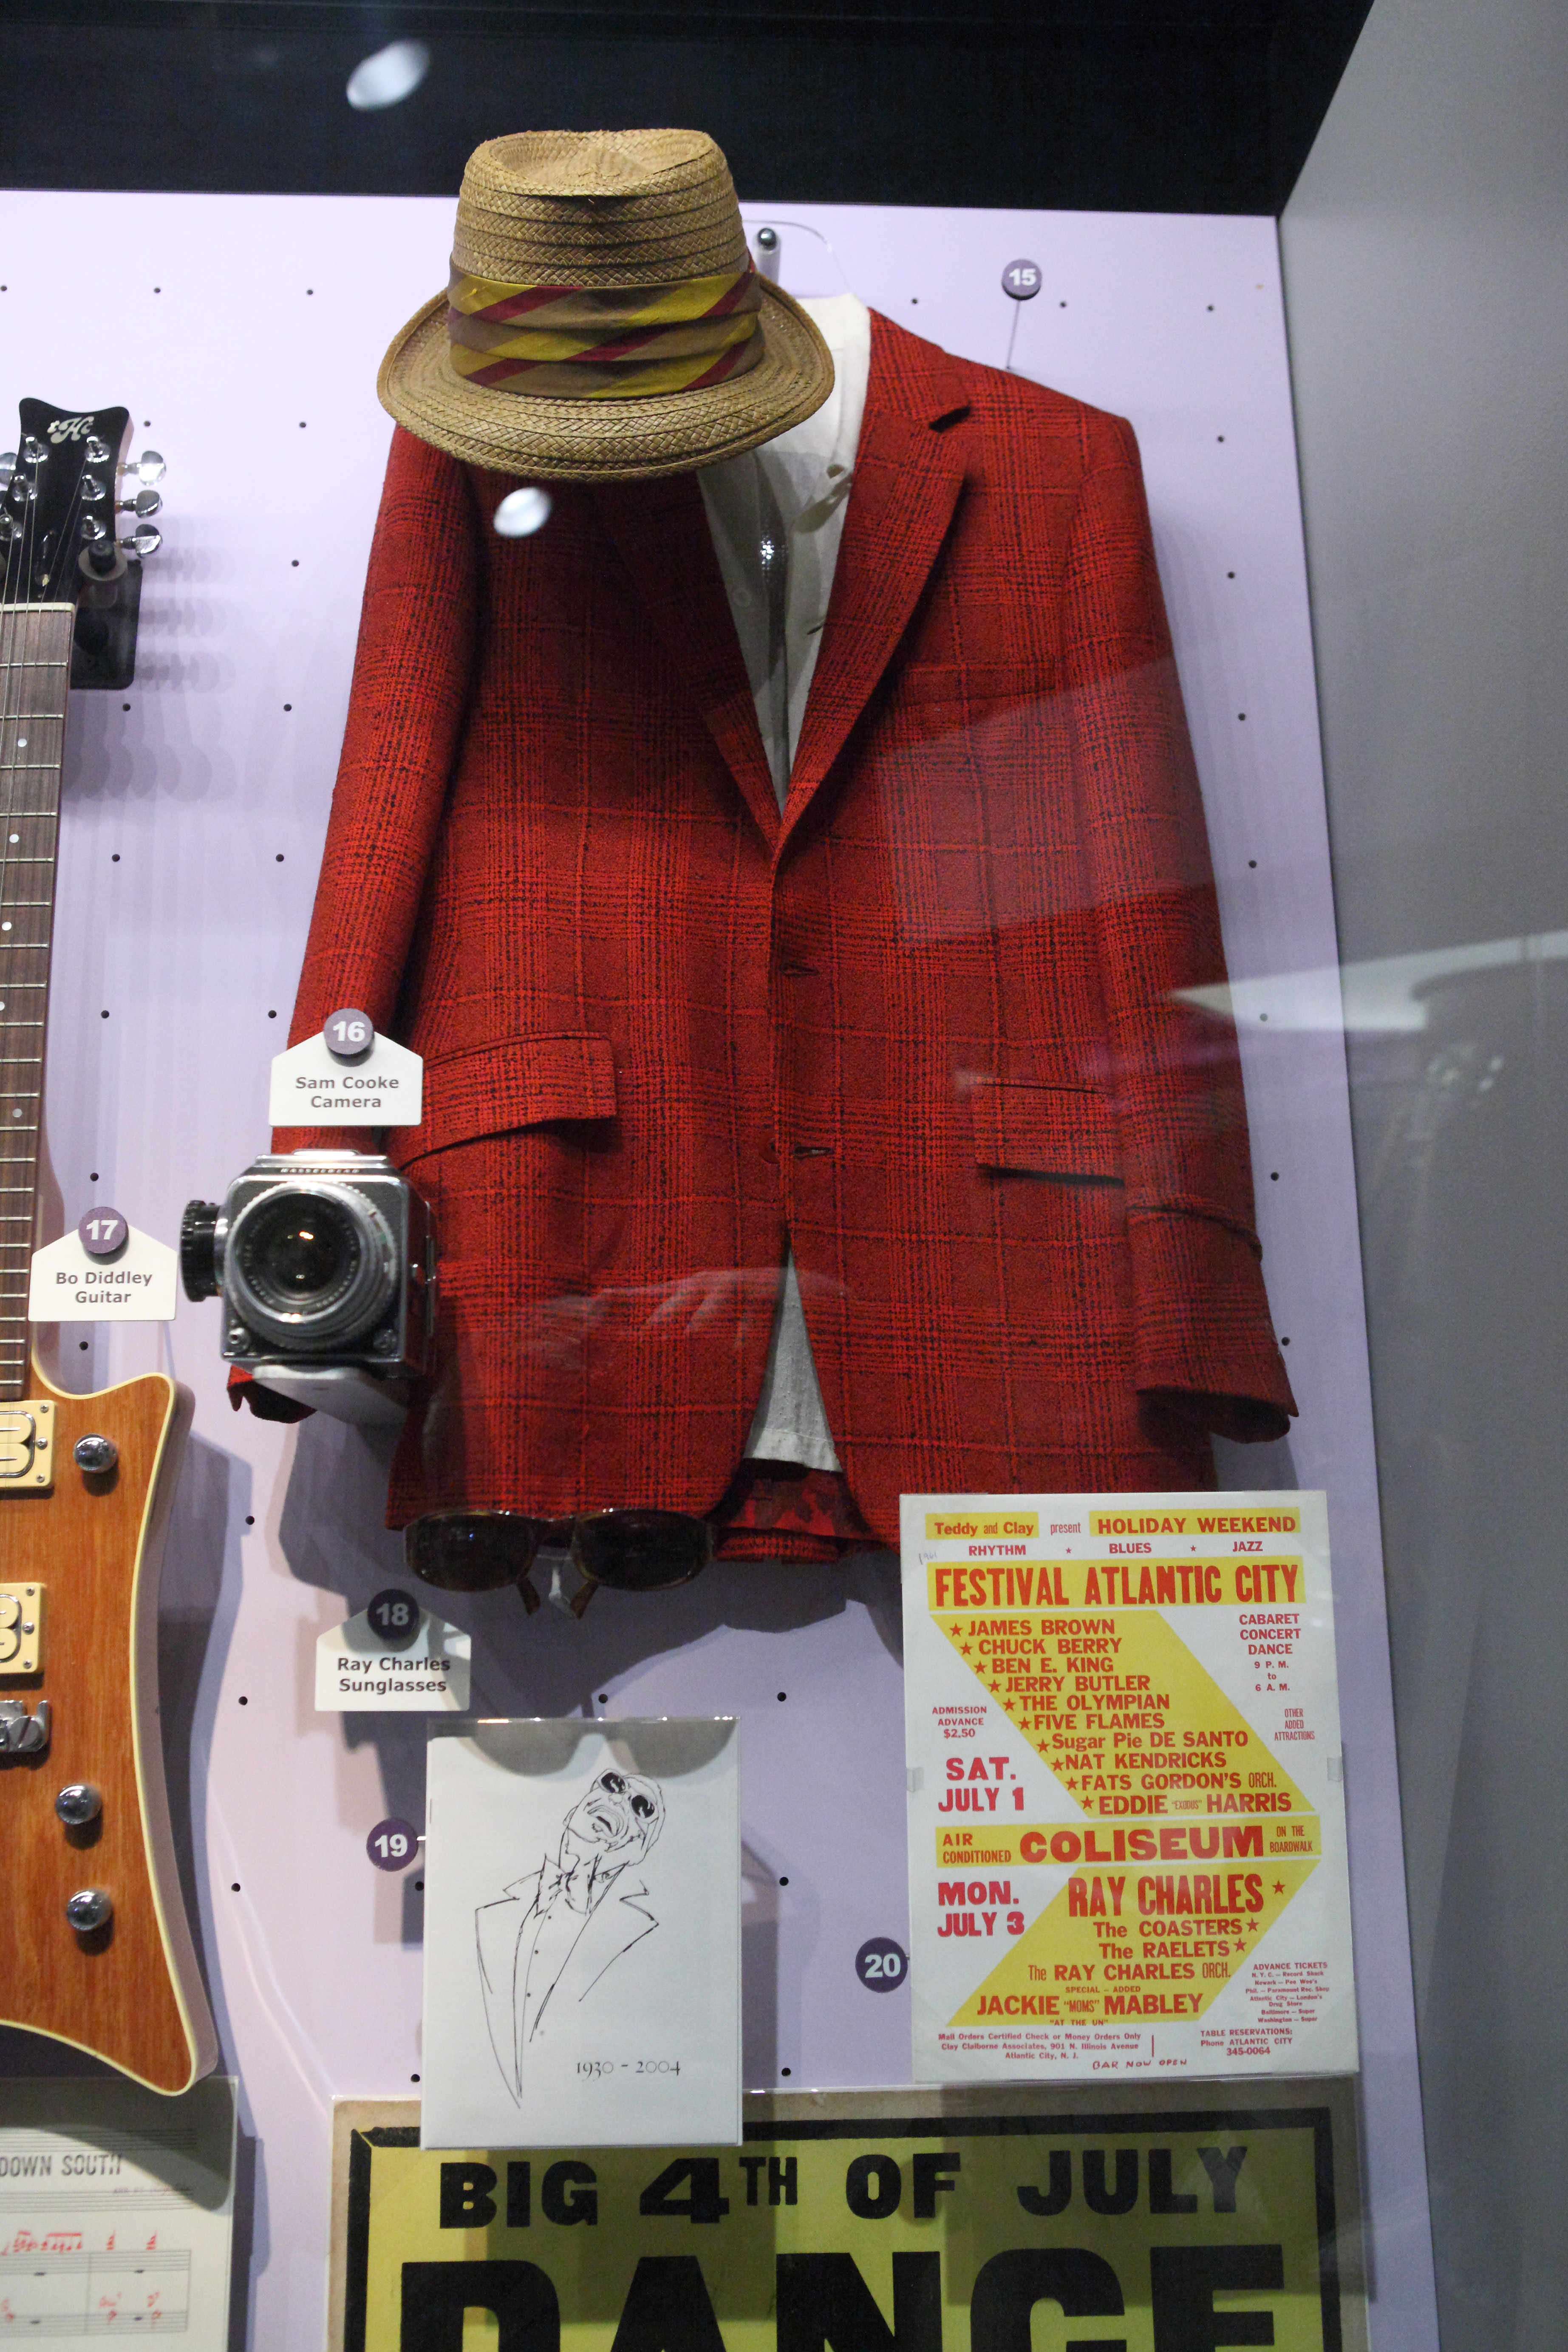 Filesam Cookes Outfit Rock And Roll Hall Of Fame 2014 12 30